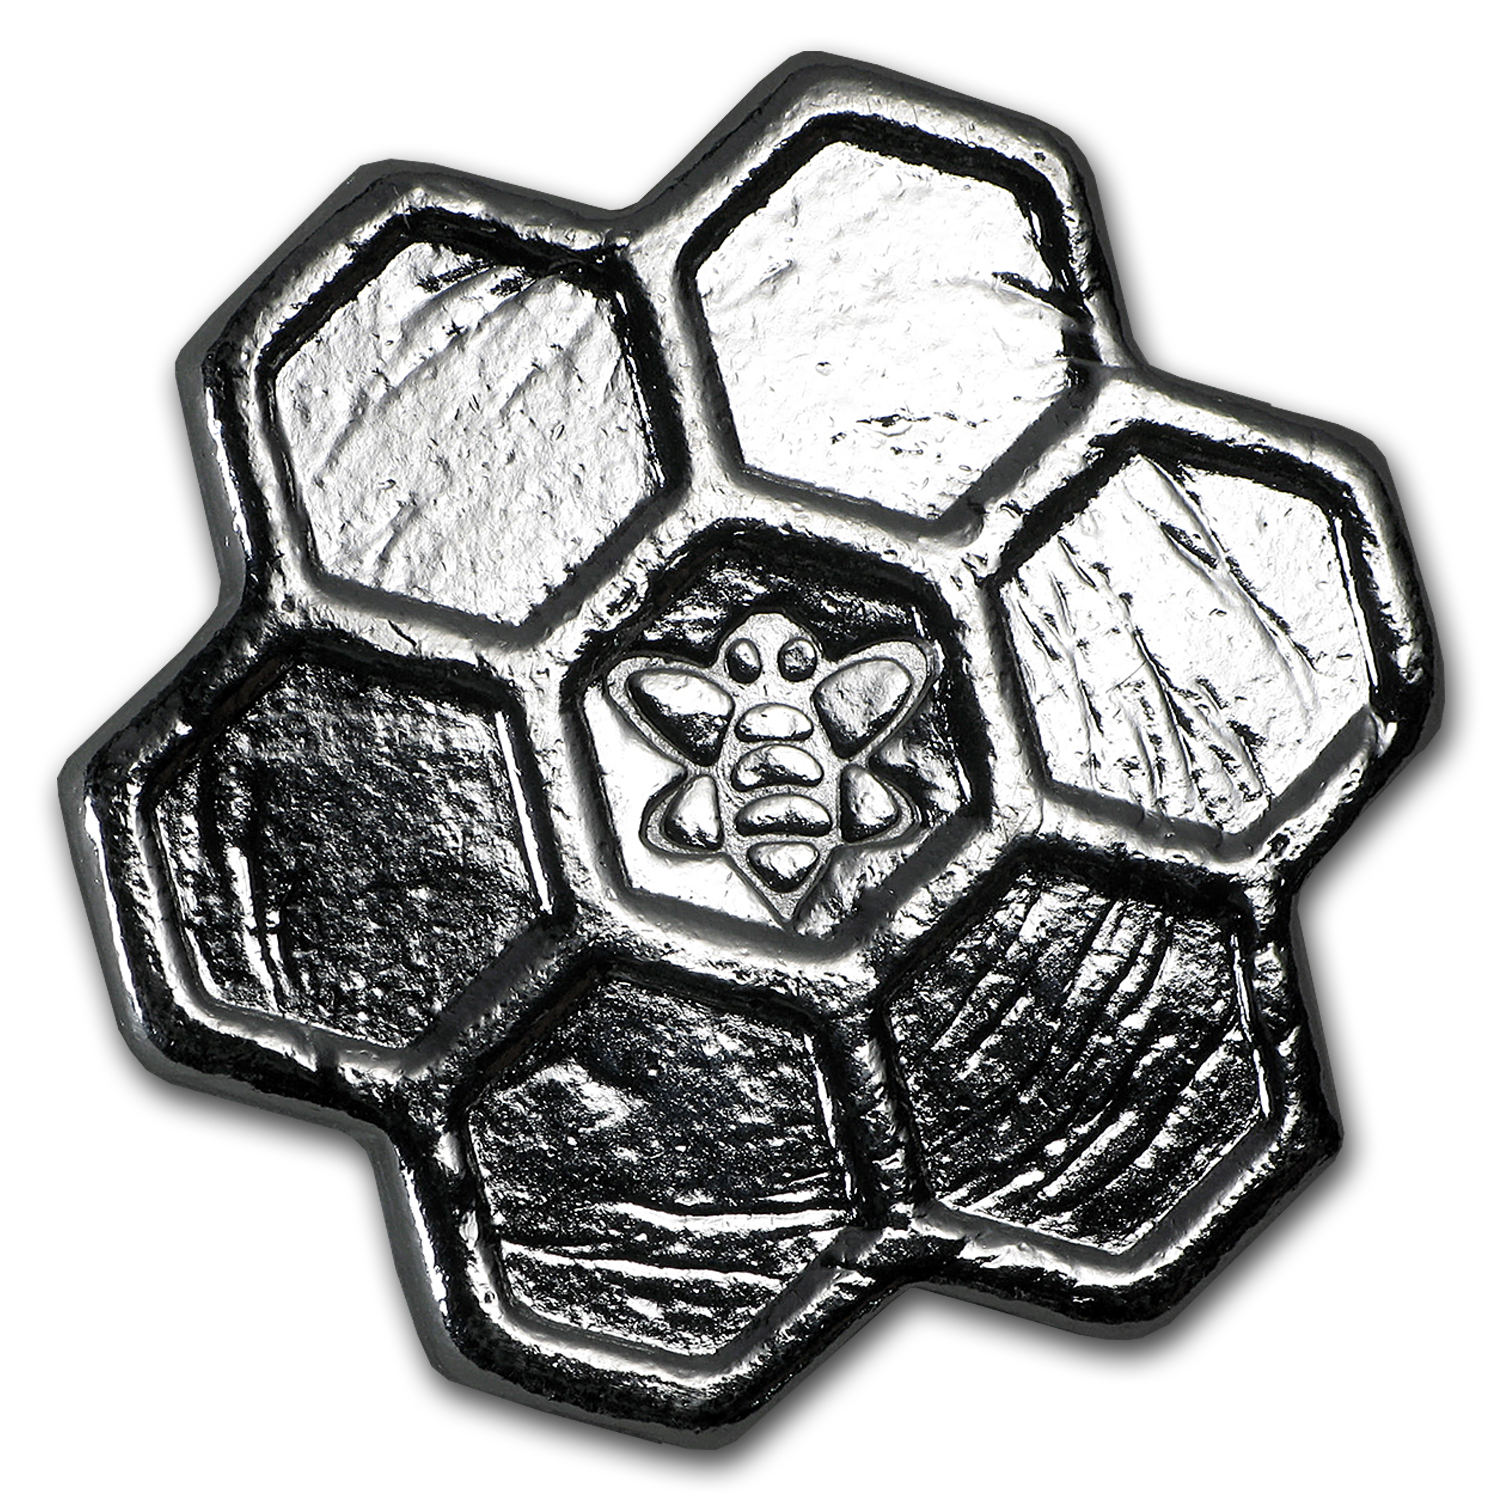 2 oz Silver - Yeager Poured Silver (Honeycomb)